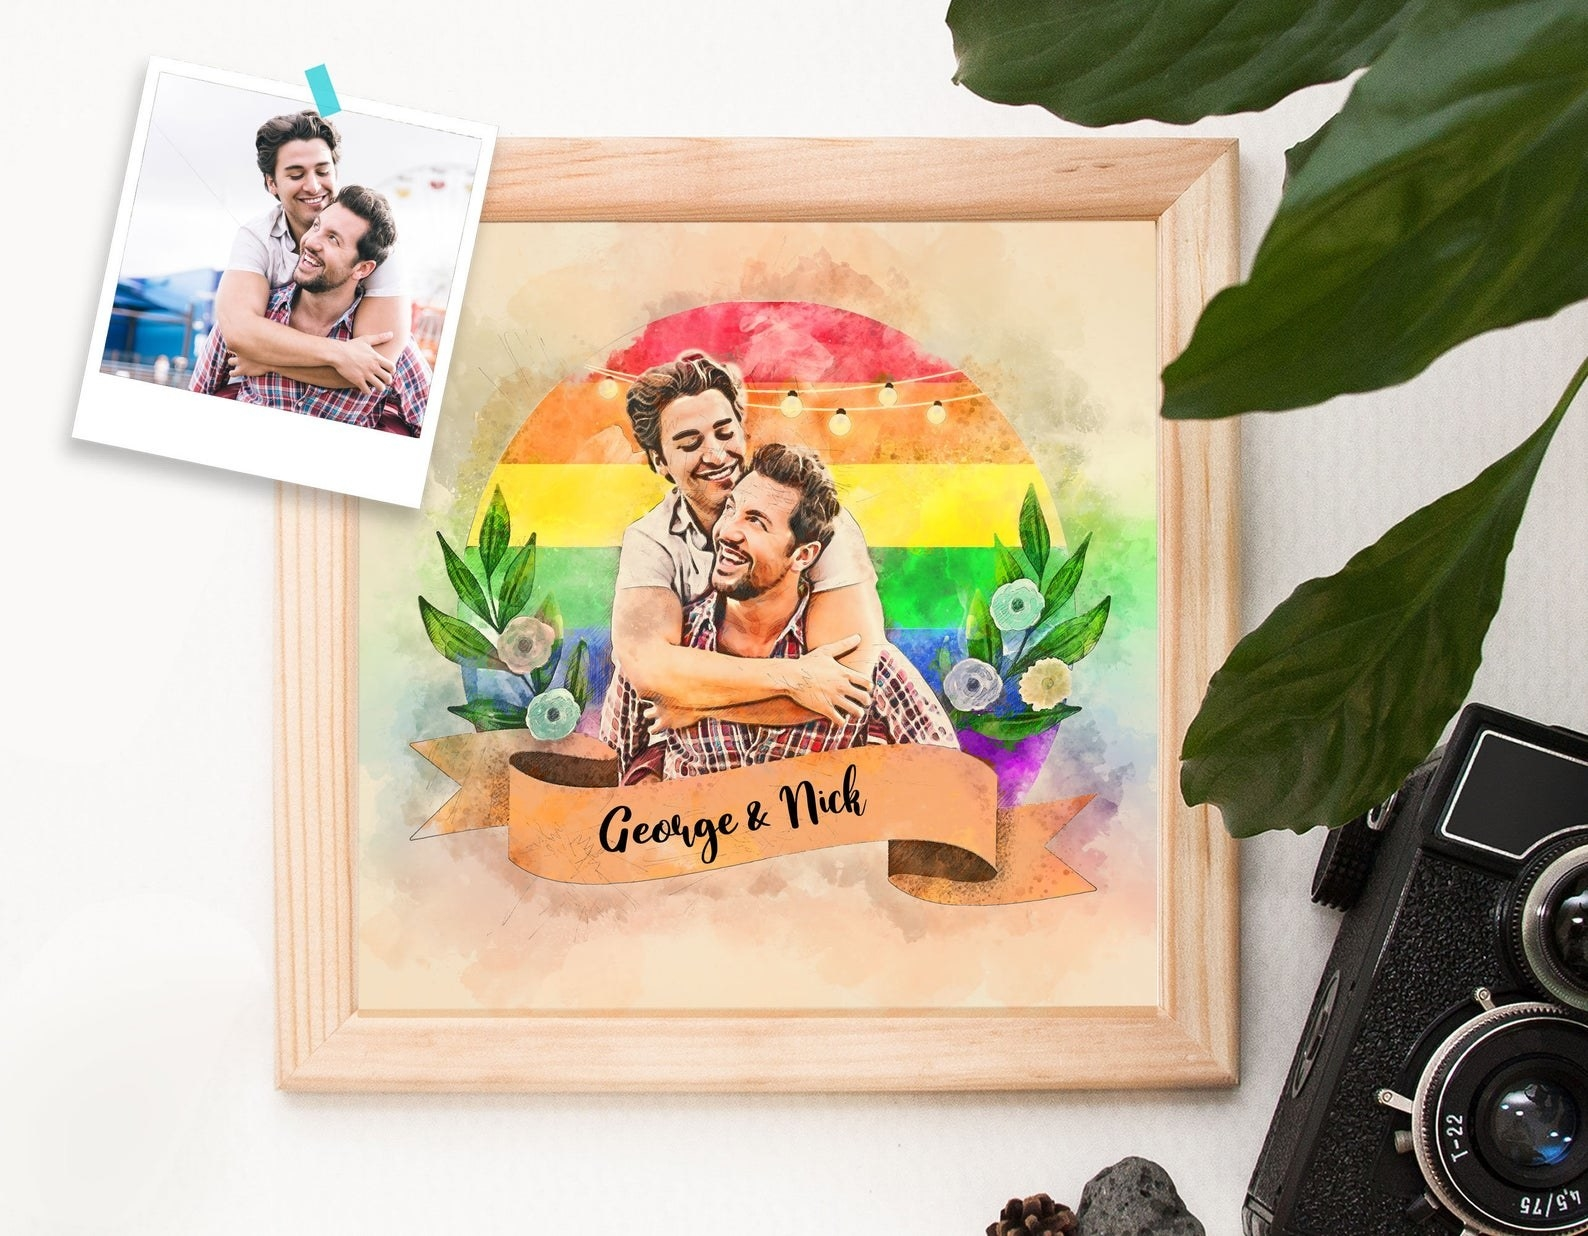 A wall art print of a couple with a rainbow background and an actual picture of the couple next to it, showing the personalized illustration